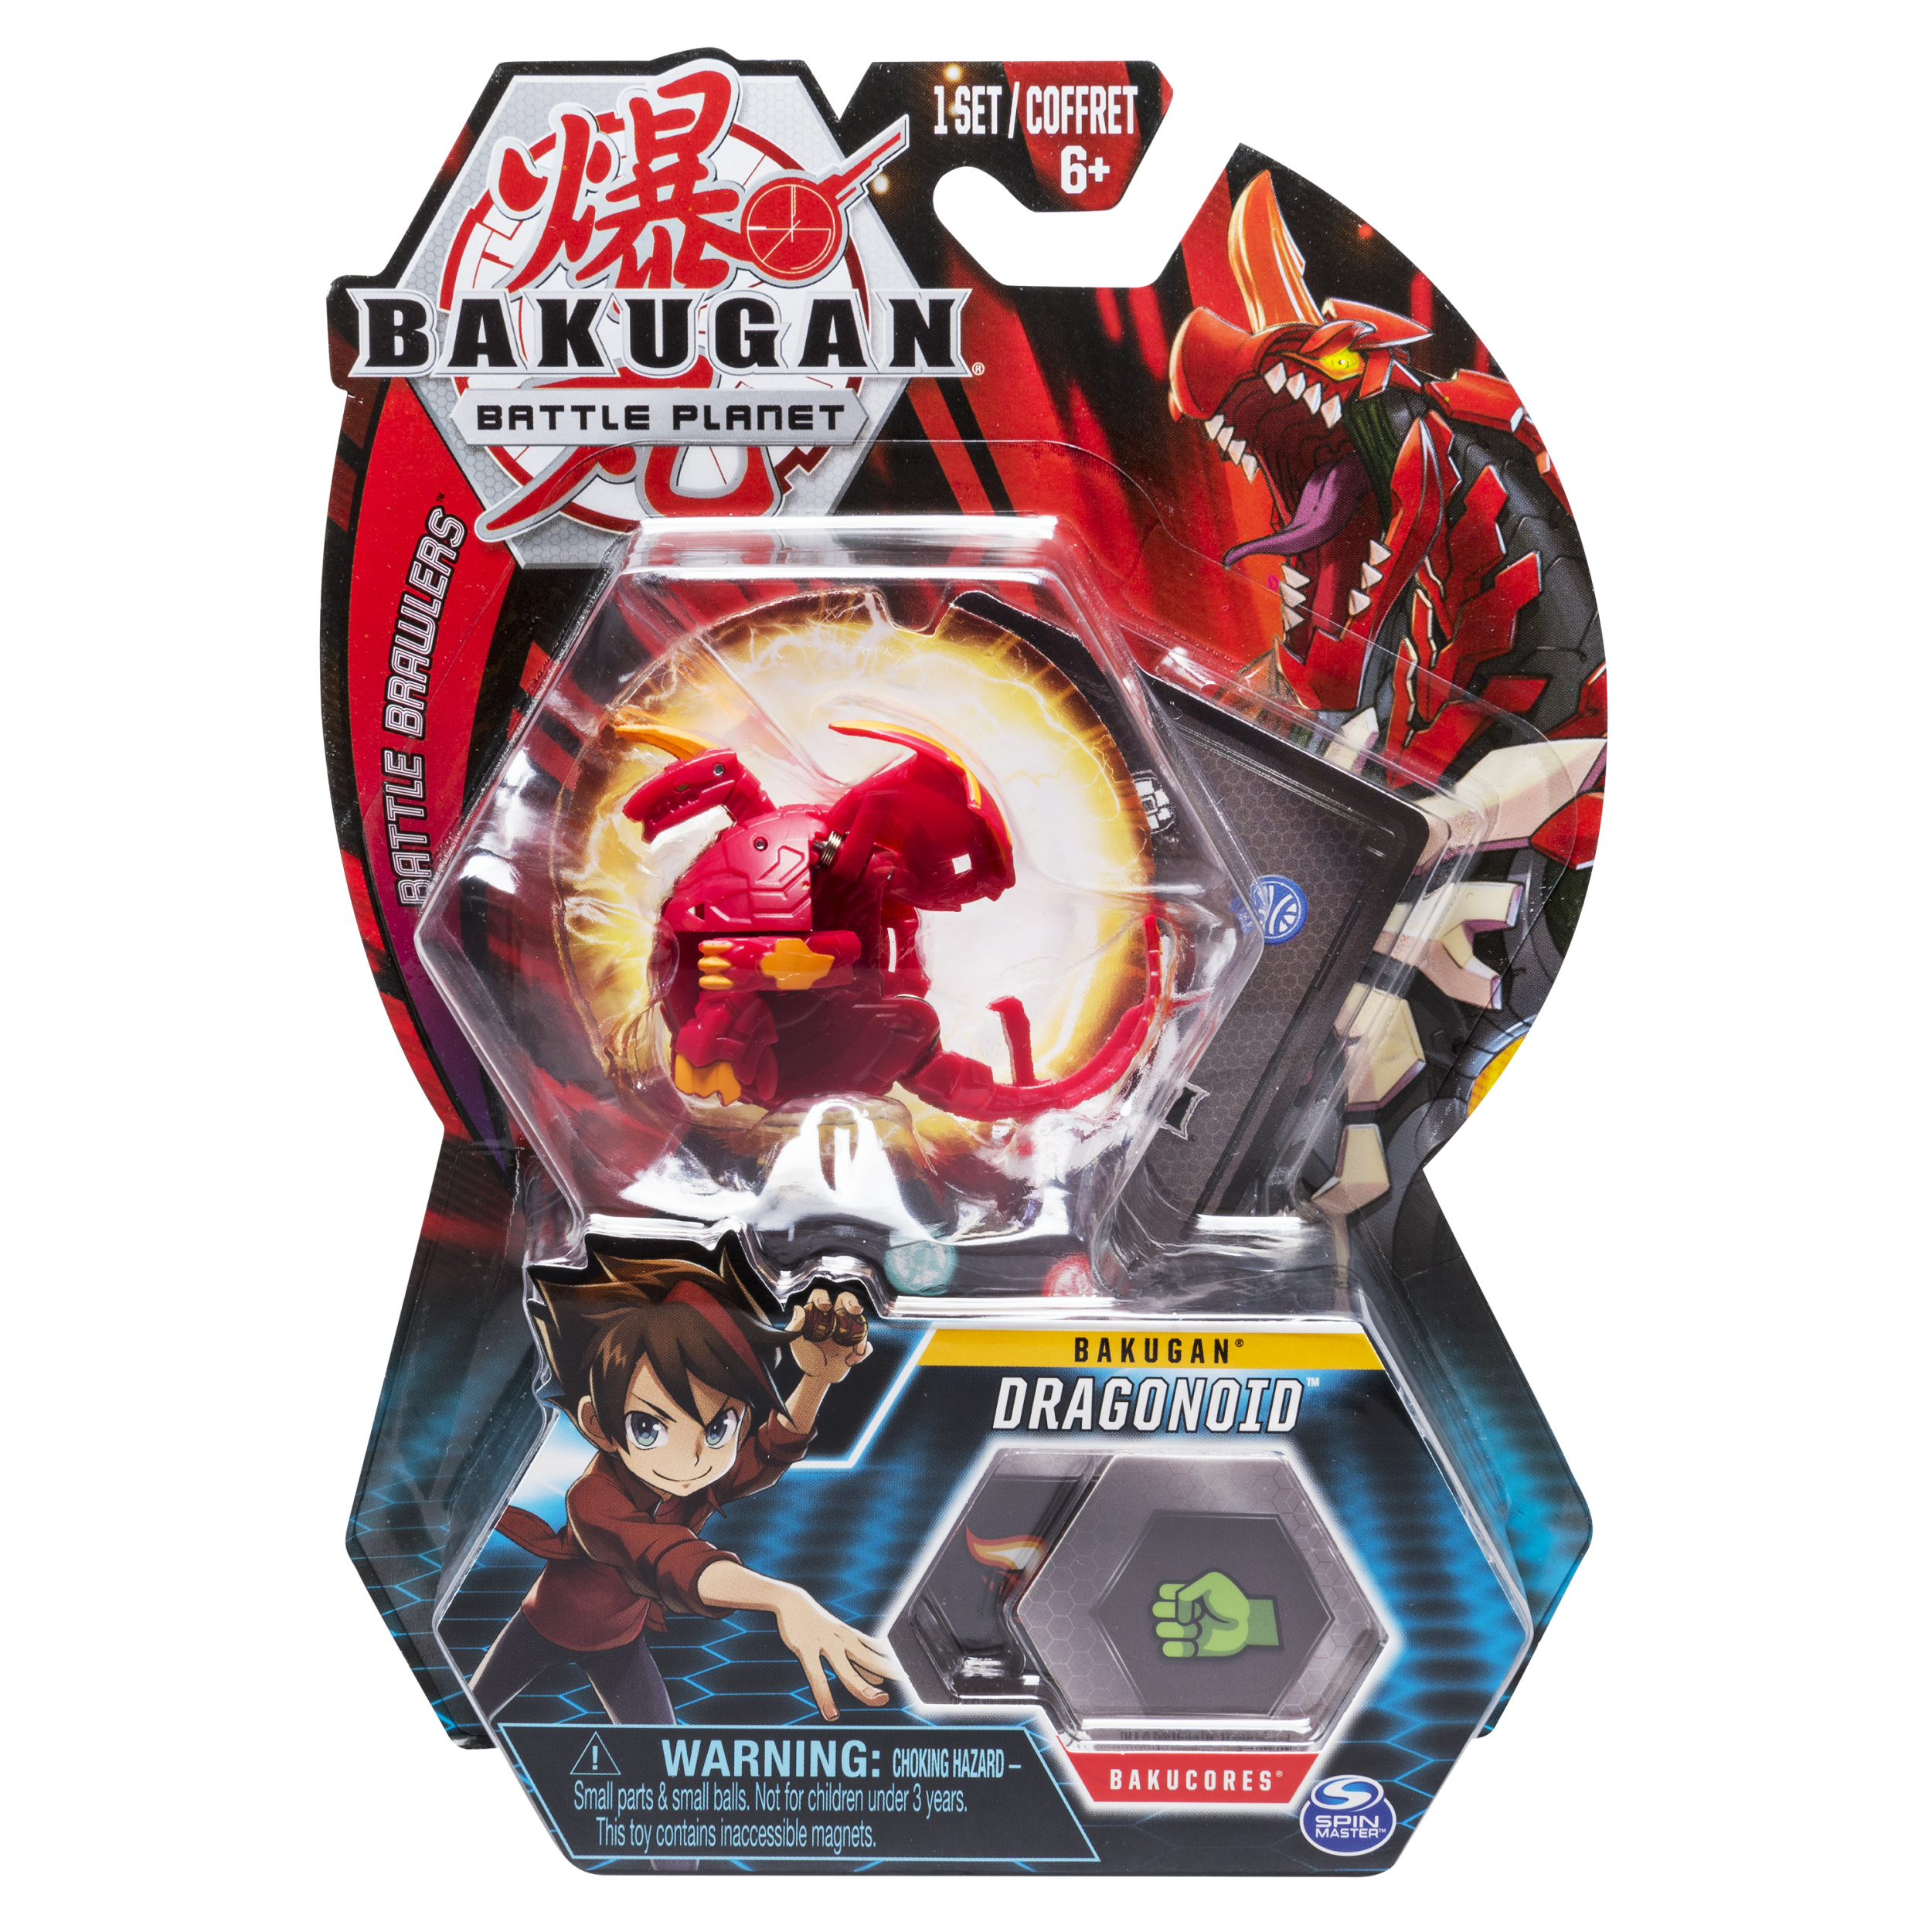 Bakugan, Dragonoid, 2-inch Tall Collectible Transforming Creature, for Ages 6 and Up